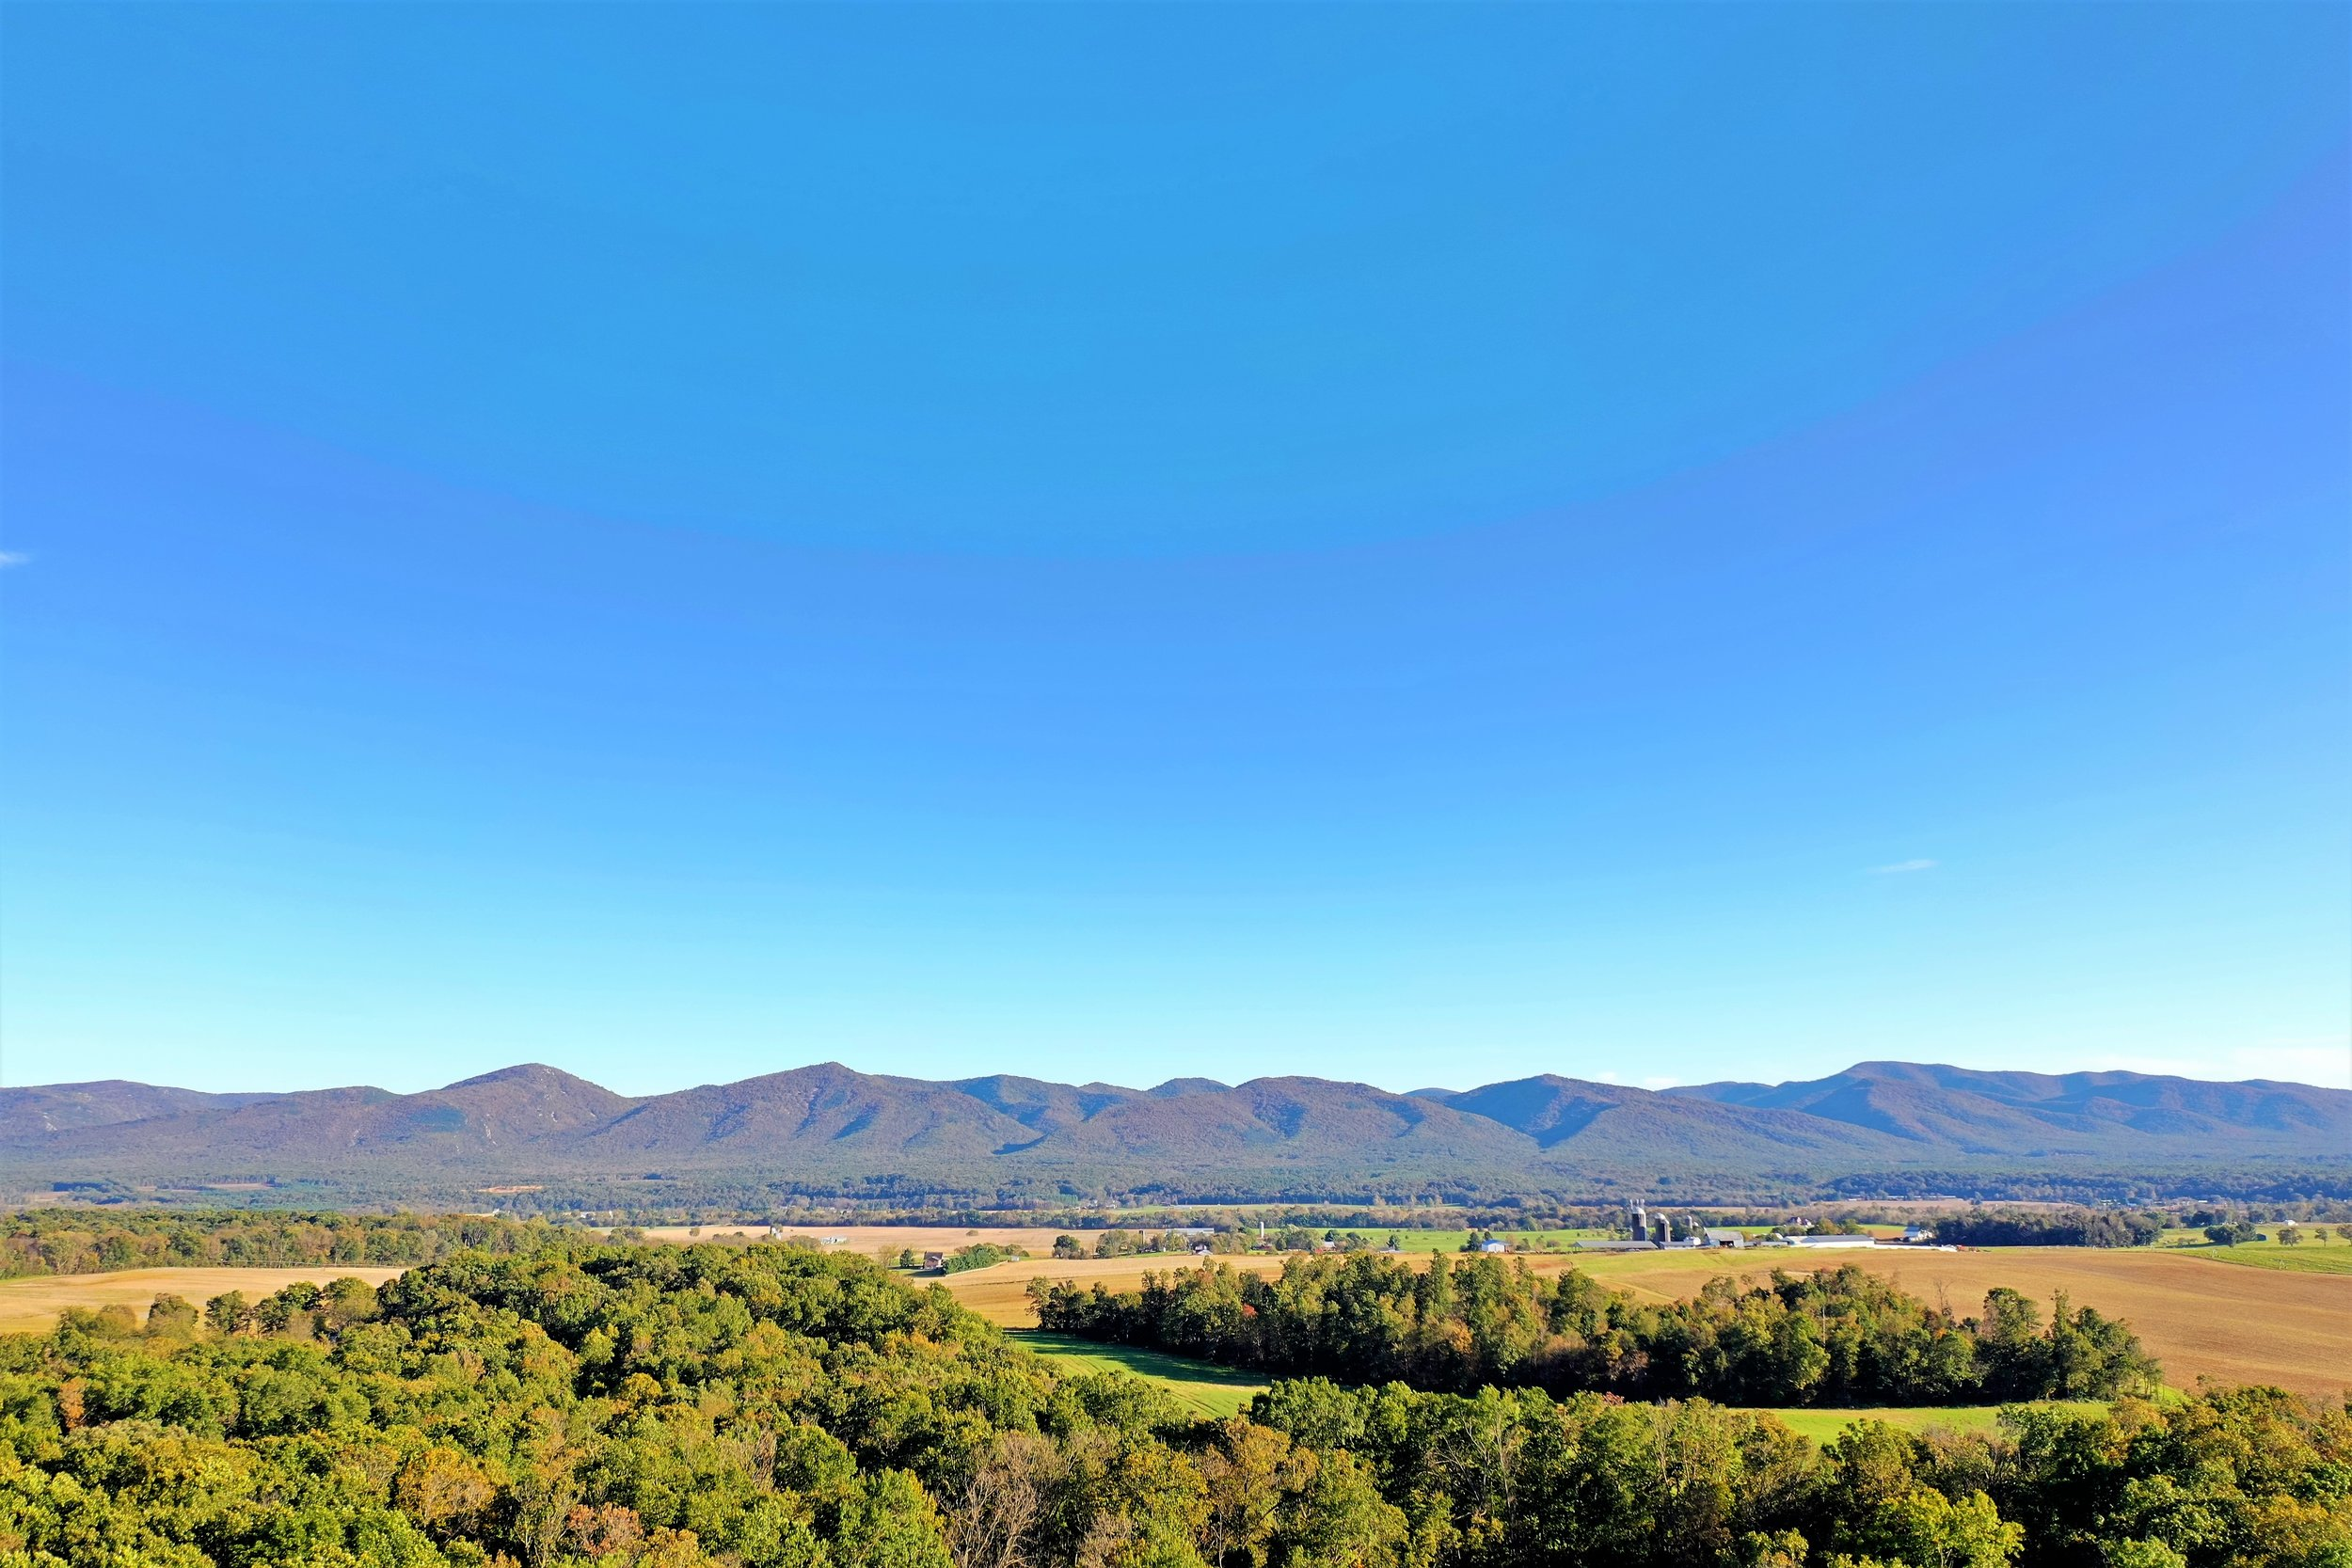 VALLEY SKY - thank you for your interest in Valley Sky. if you are interested in our aerial photography or videography services, please contact us. we look forward to providing the Shenandoah Valley and surrounding areas with drone facilitated aerial photography and videography.